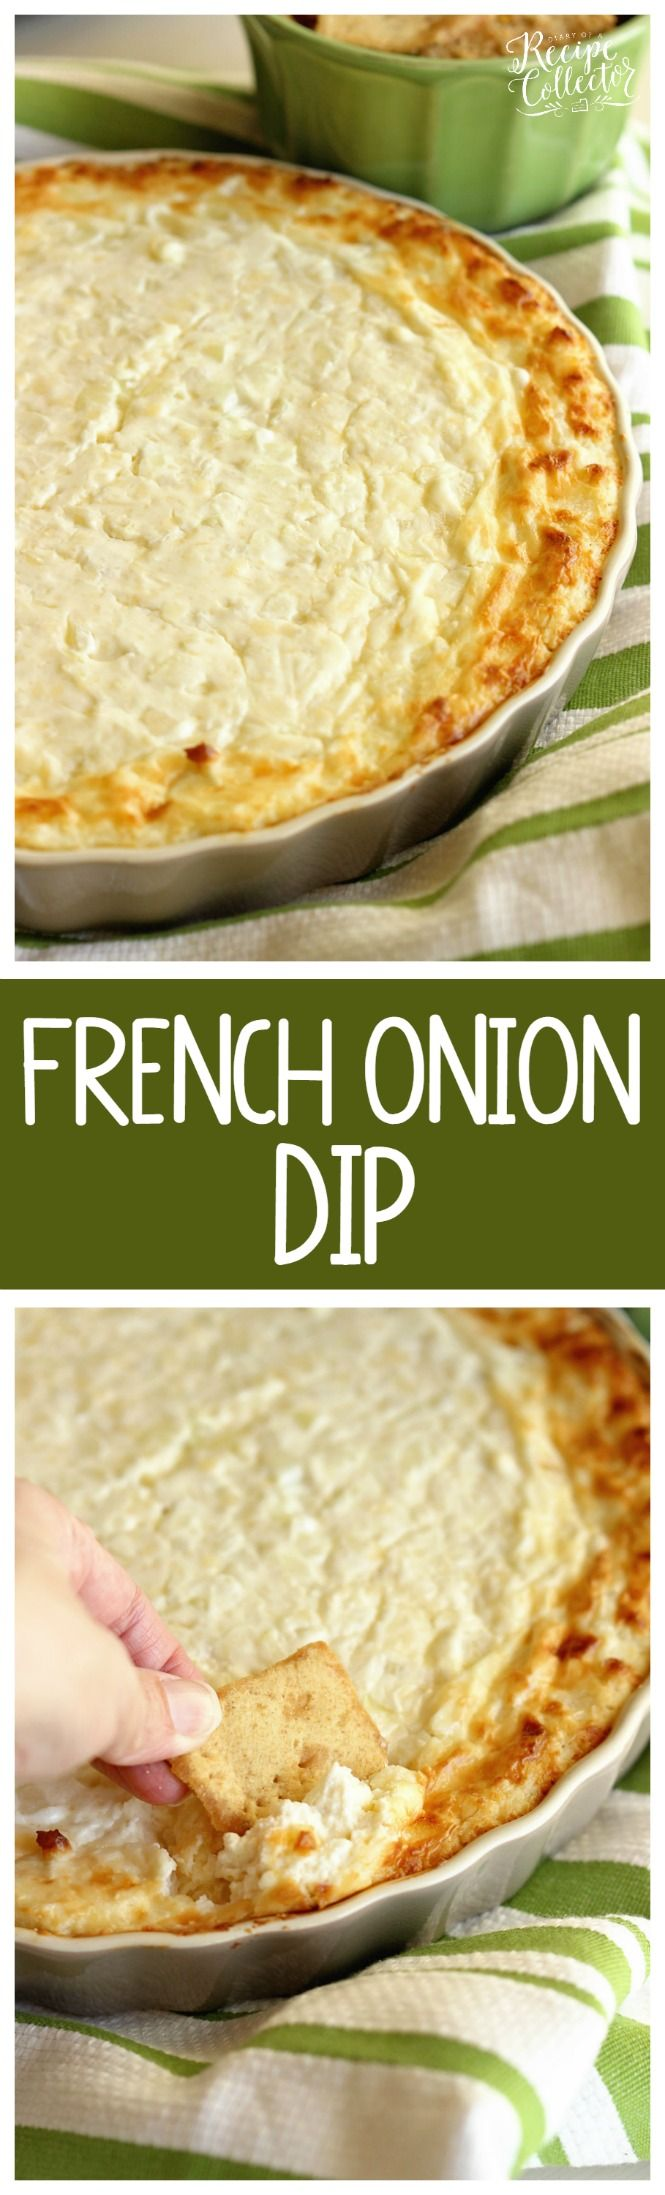 French Onion Dip - Everyone loves this appetizer! It's filled with cream cheese, onions, and parmesan cheese and baked to perfection!